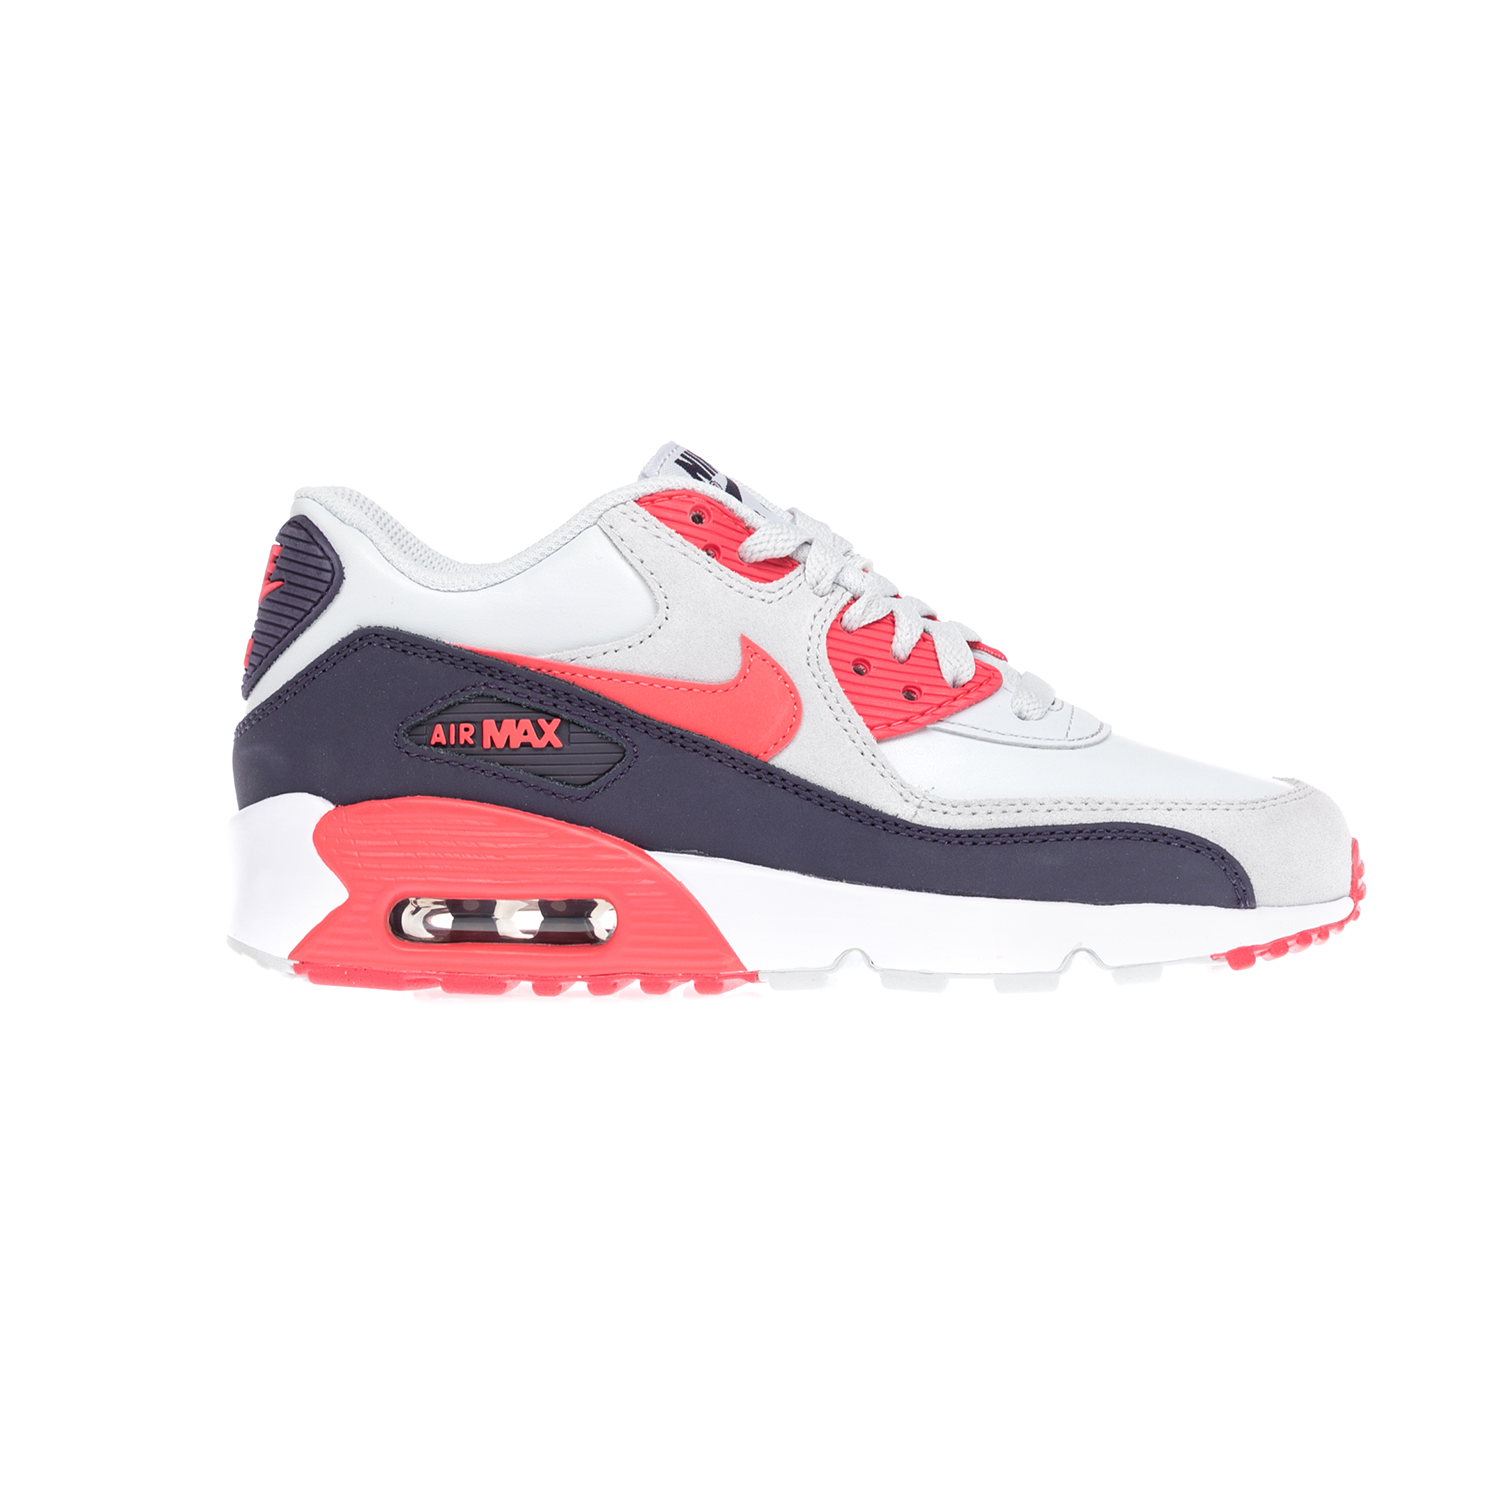 NIKE – Παιδικά παπούτσια NIKE AIR MAX 90 LTR (GS) άσπρα-μπλε